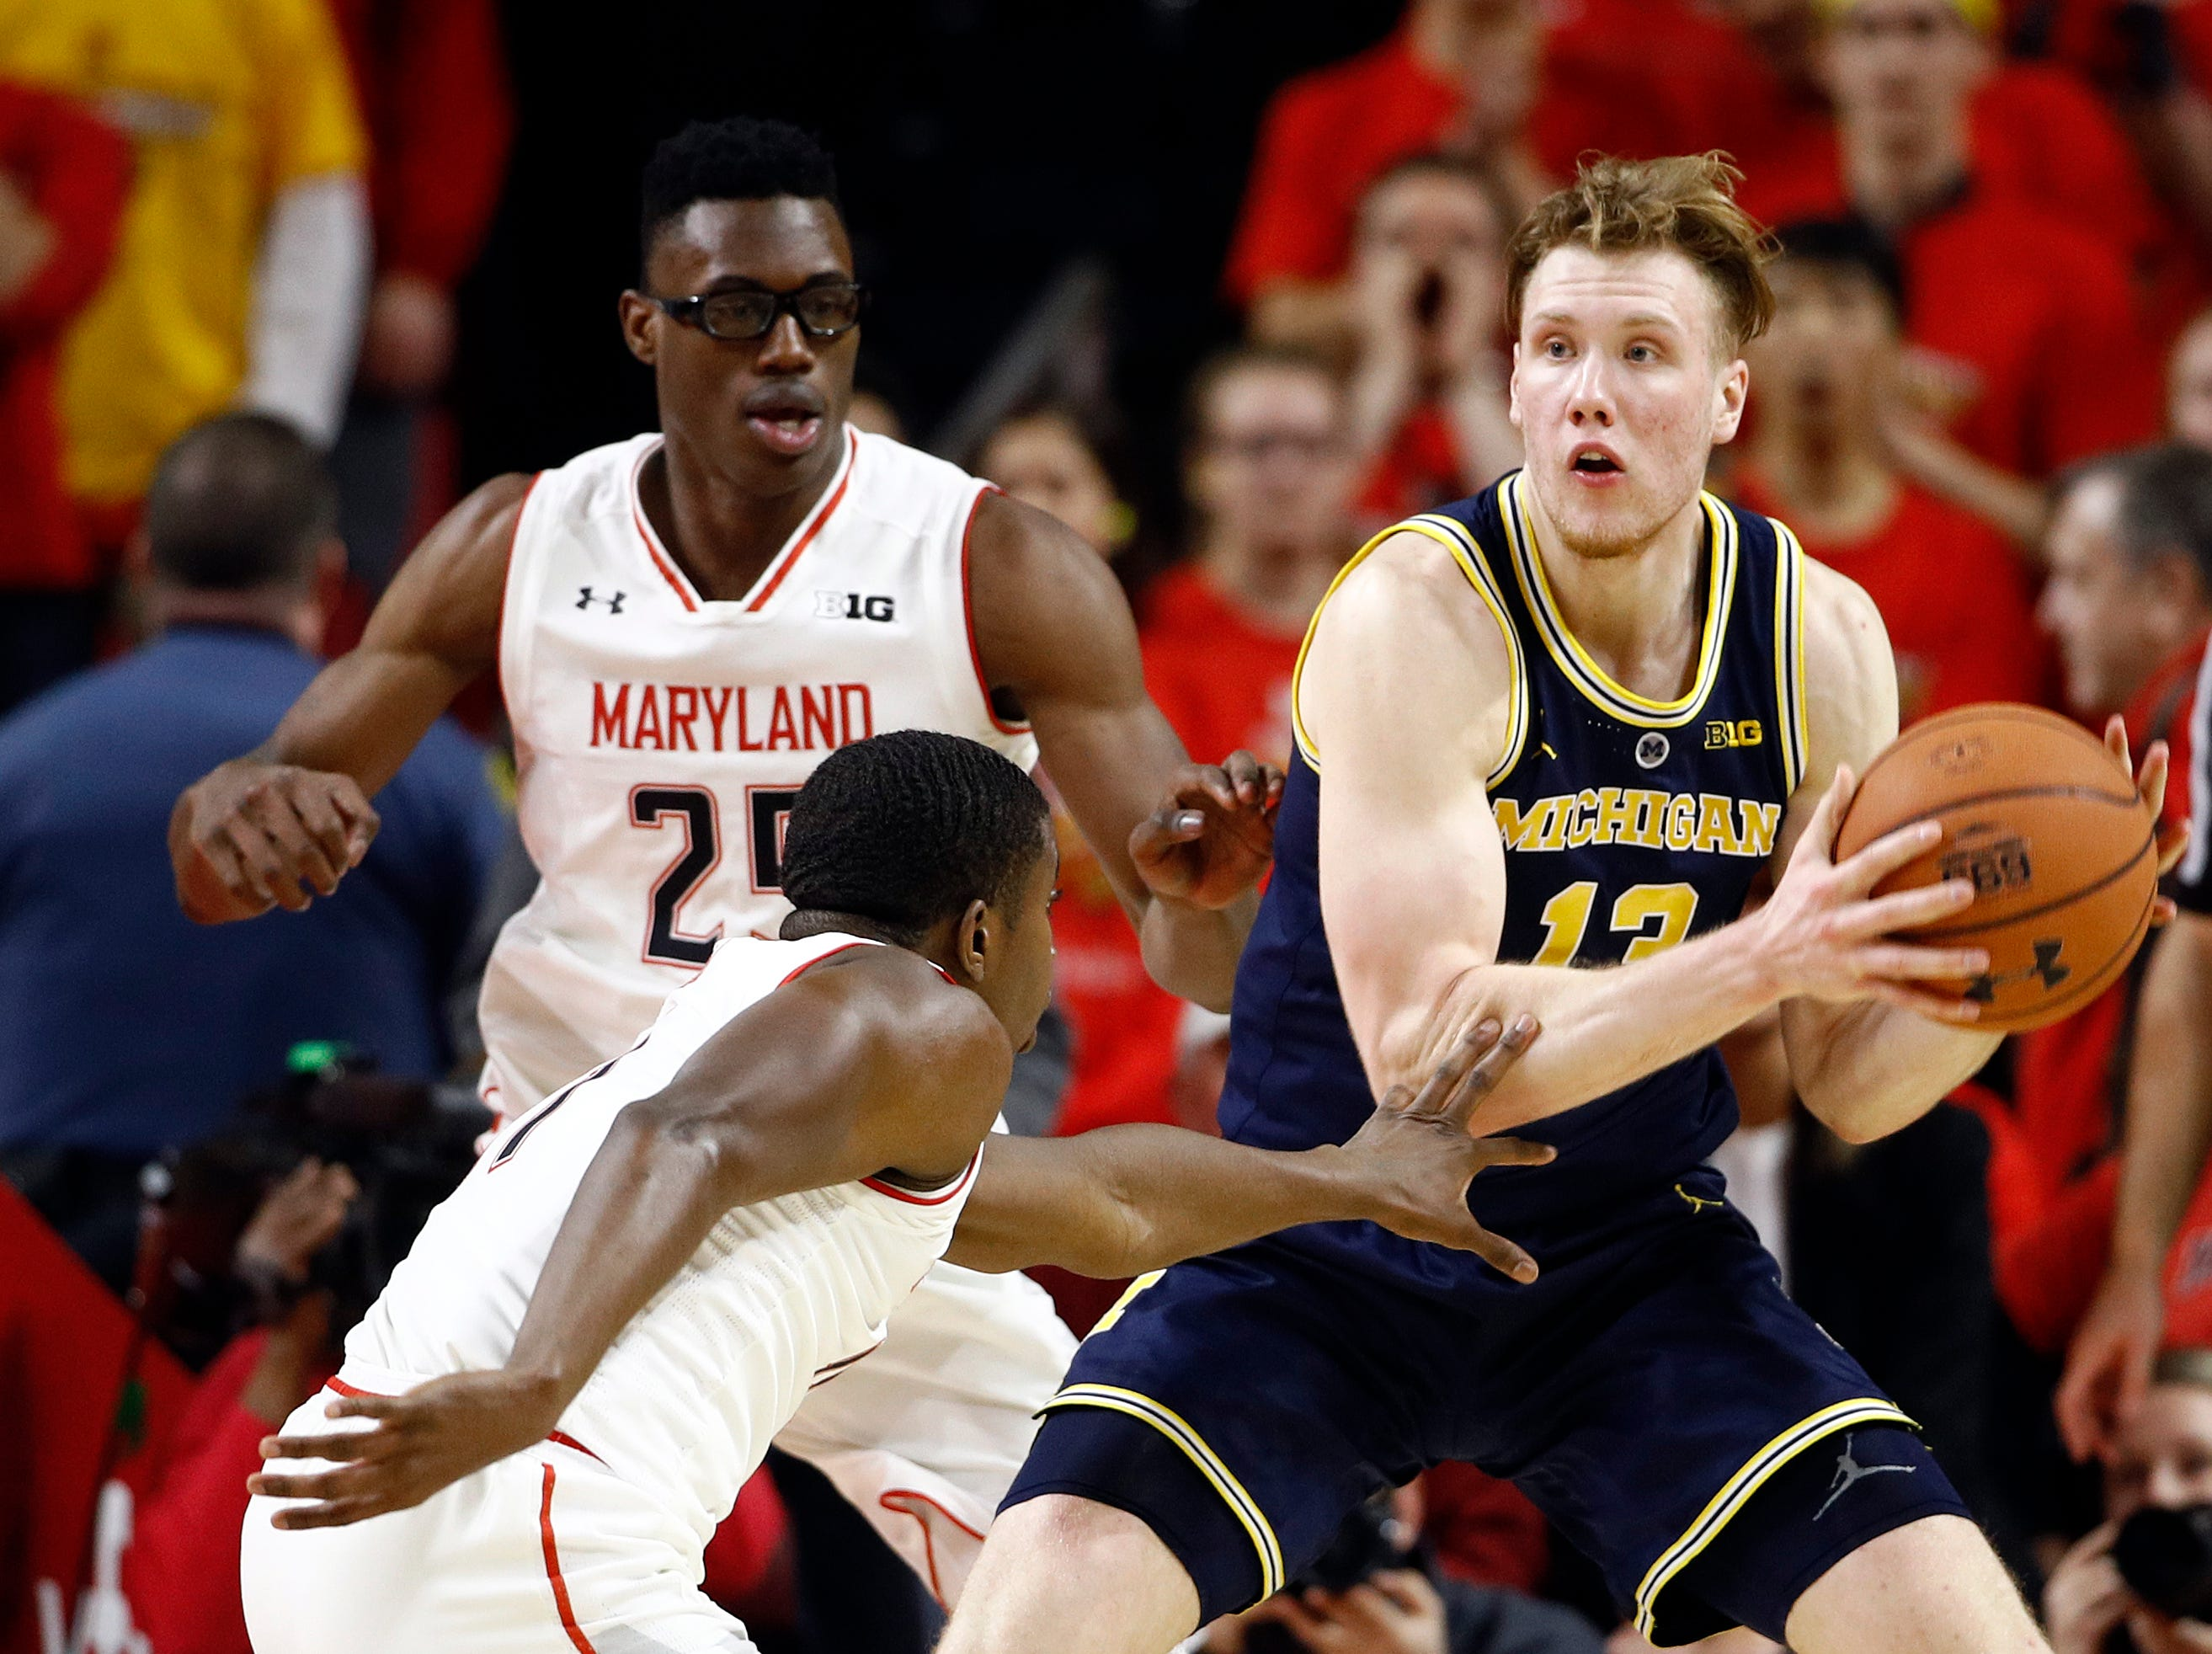 Michigan forward Ignas Brazdeikis, right, of Canada, protects the ball as he is pressured by Maryland forward Jalen Smith, left, and guard Darryl Morsell in the second half.